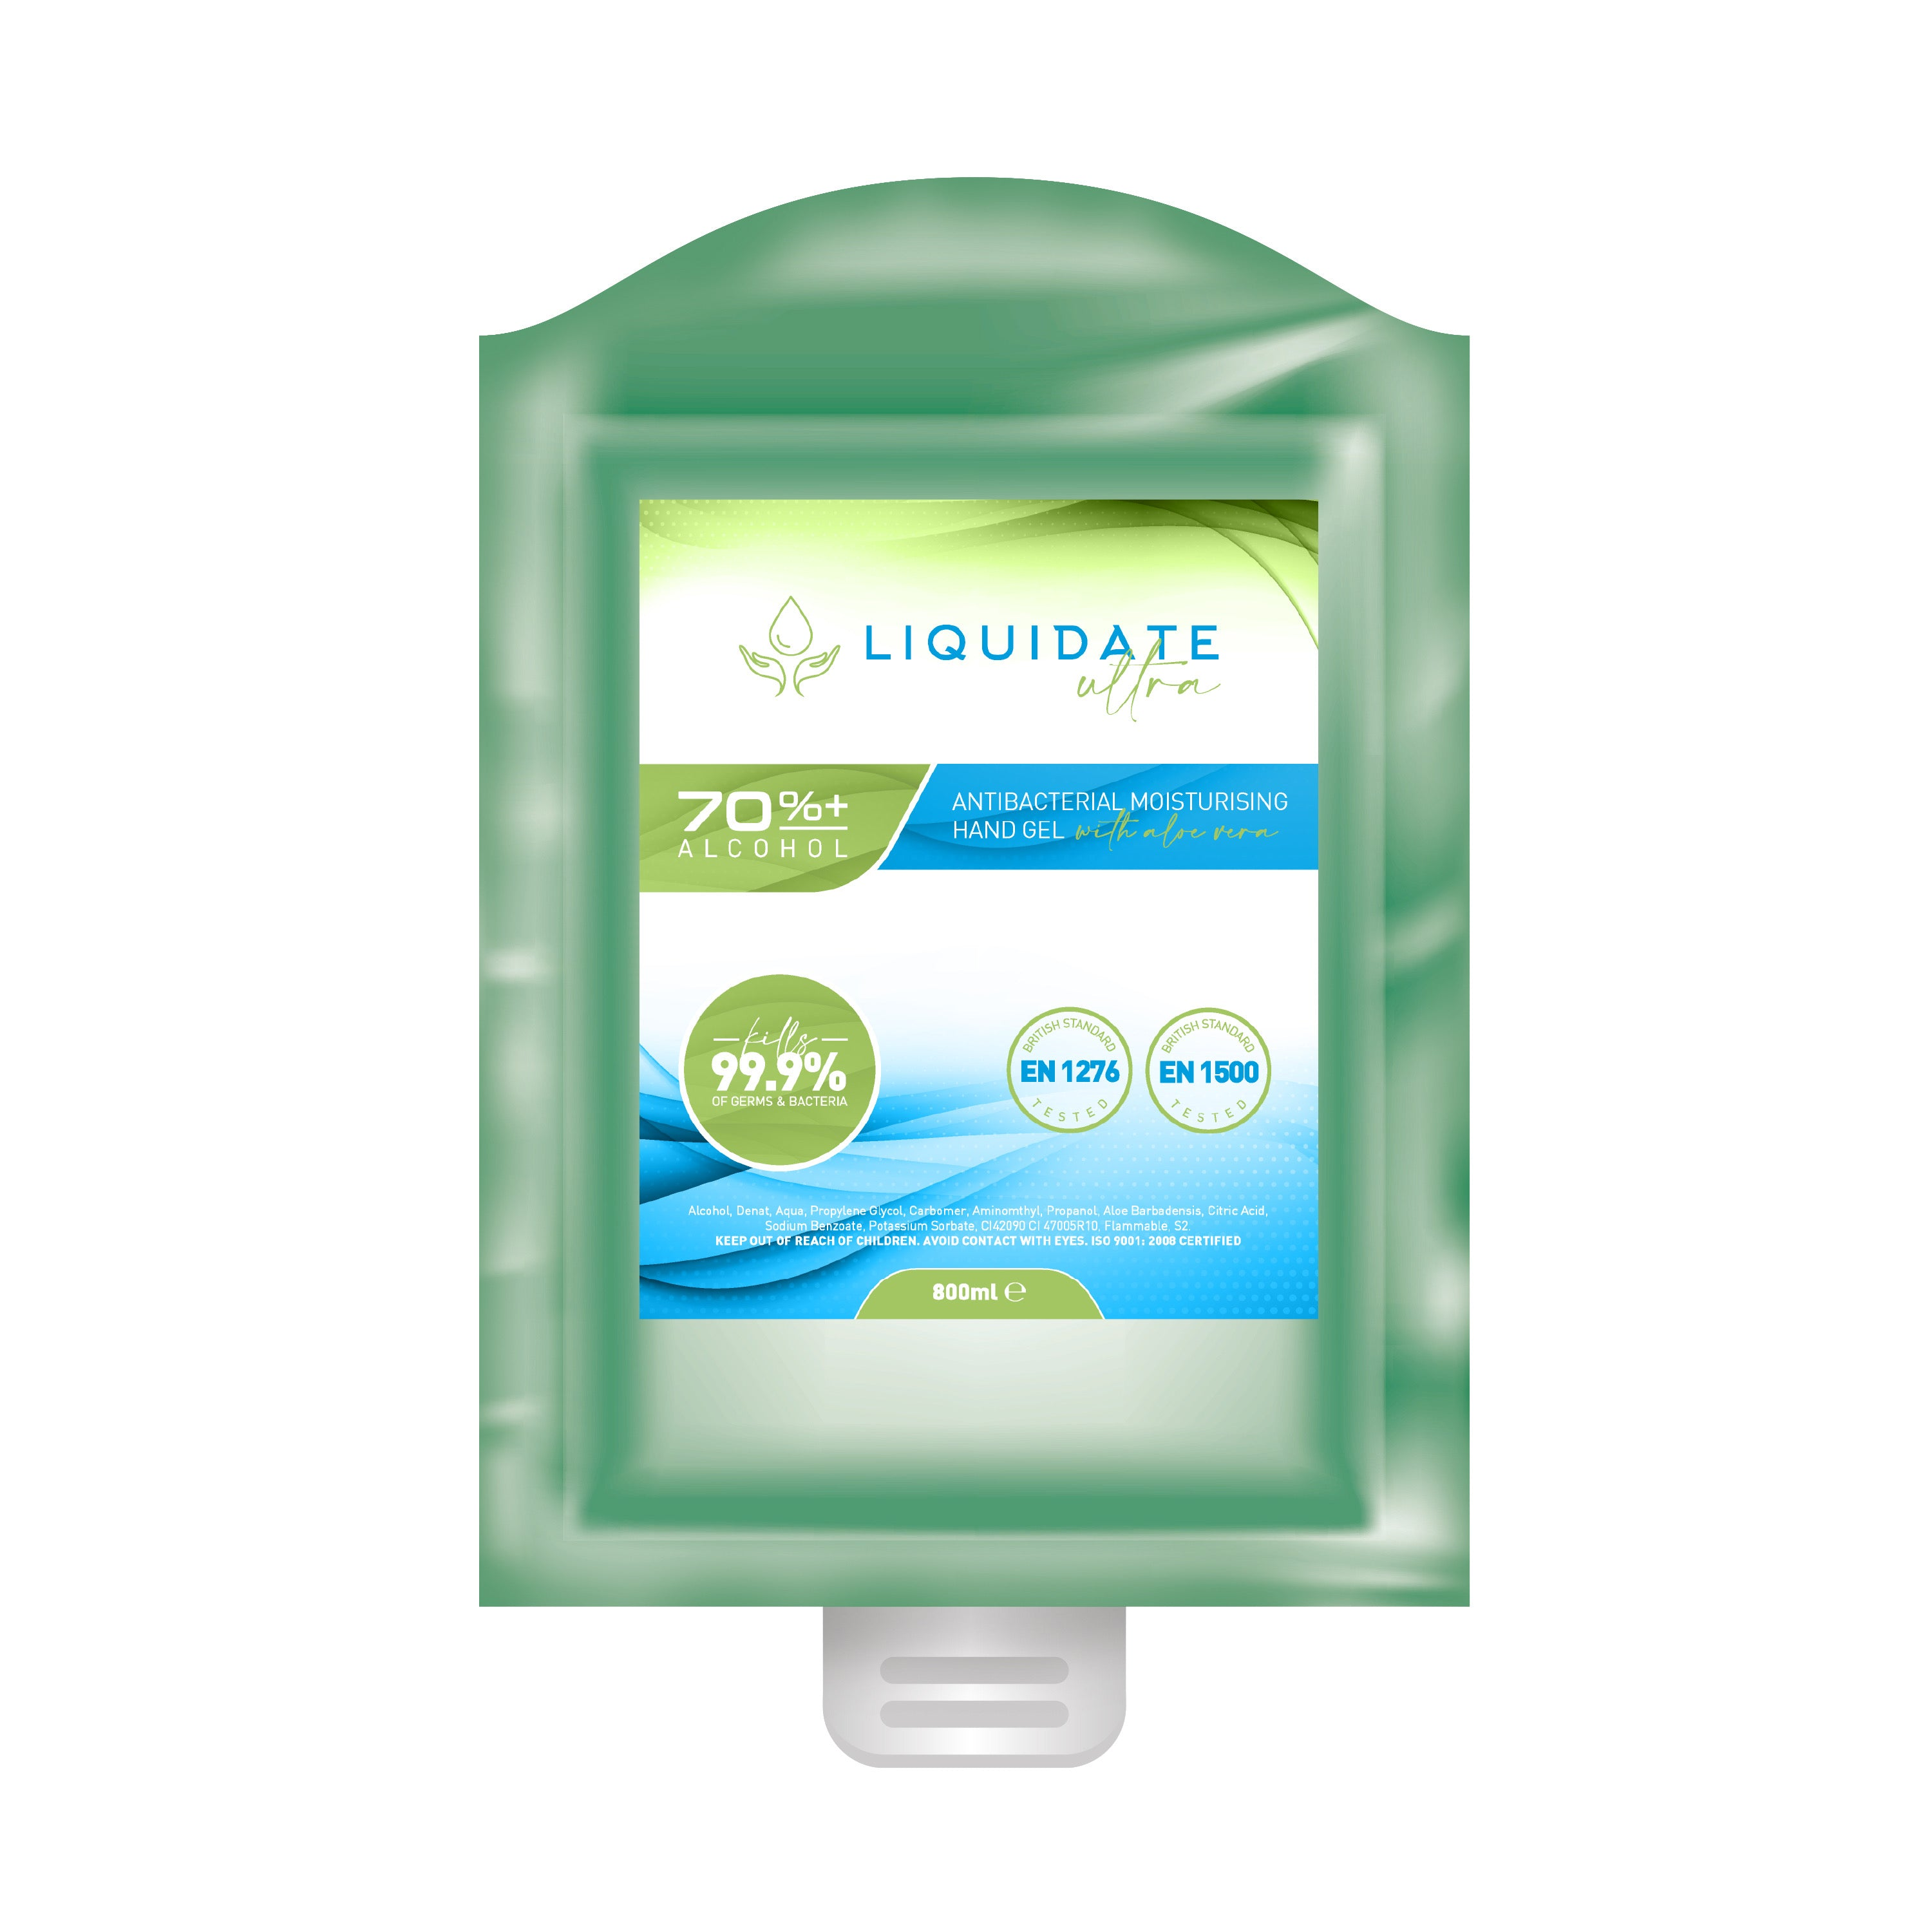 Liquidate Ultra 70% +Antibacterial, sanitiser  Alcohol Hand Gel: Box of 12 x 800ml  with Aloe Vera